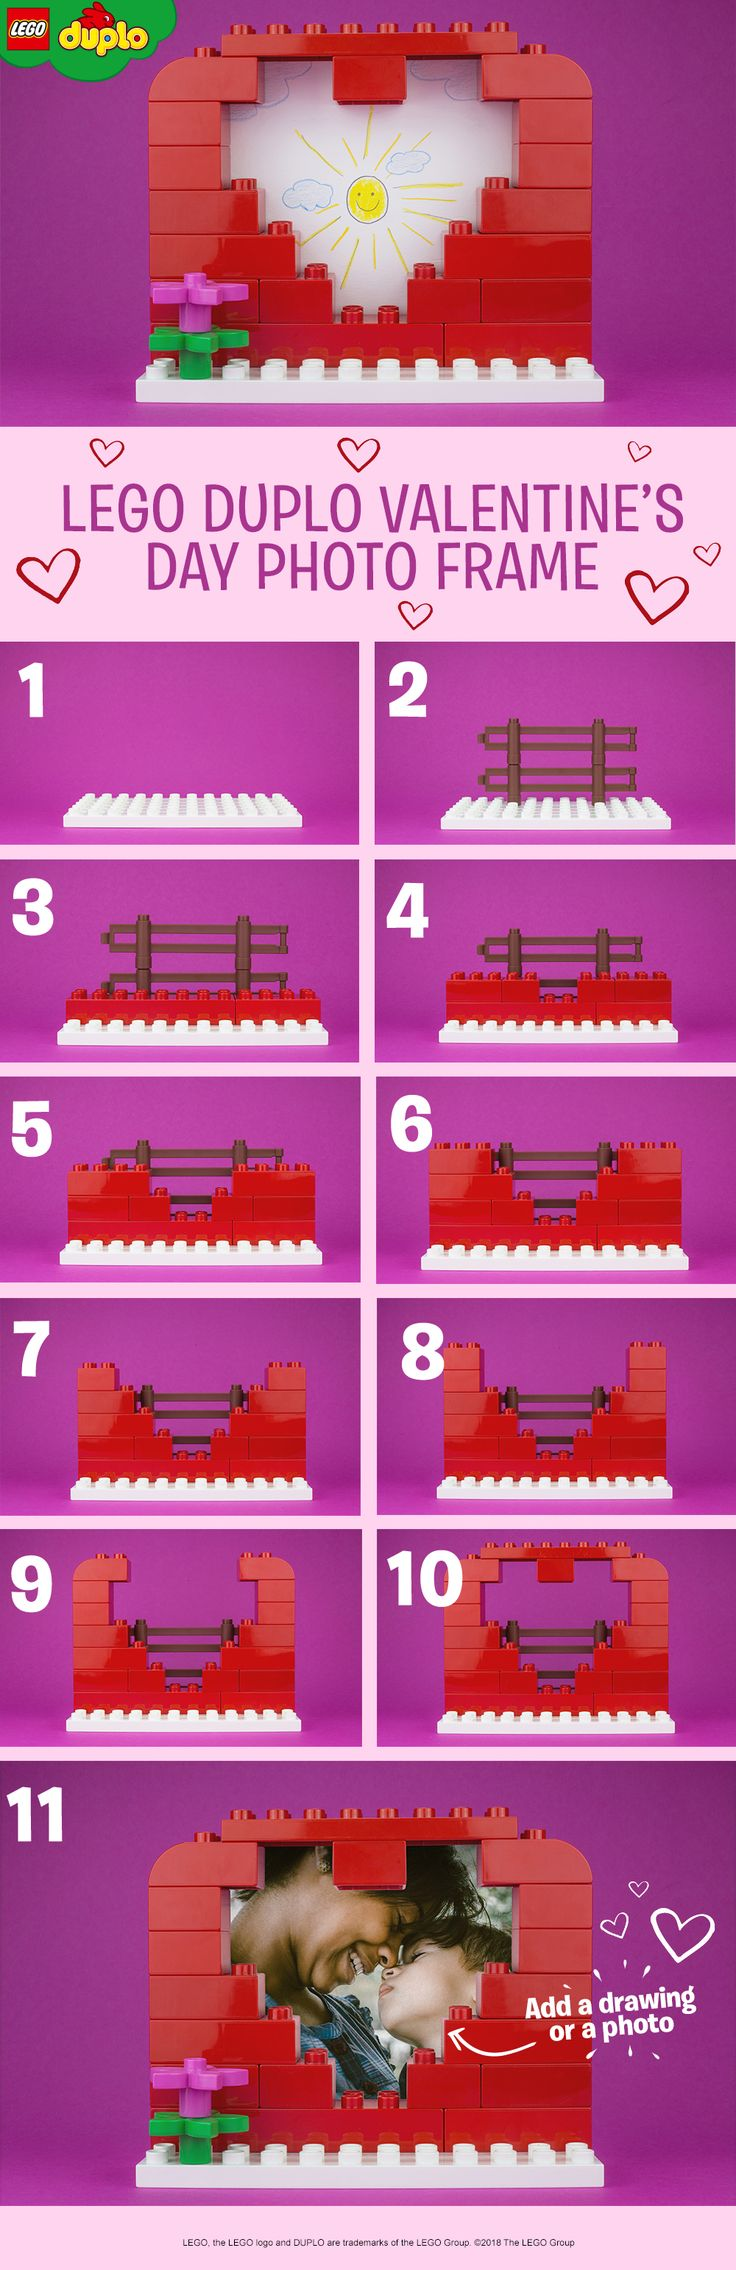 Try this fun and simple Valentine's Day play activity with your toddler. You'll need some pretty colored LEGO DUPLO bricks (red if you have them, but any color will look great!) and a few accessories. Use a small baseplate and make the bricks into a heart shaped frame, decorate with any LEGO DUPLO flowers you have, then add a little fence to hold a photo or child's drawing in place. The perfect gift for a parent or grandparent!